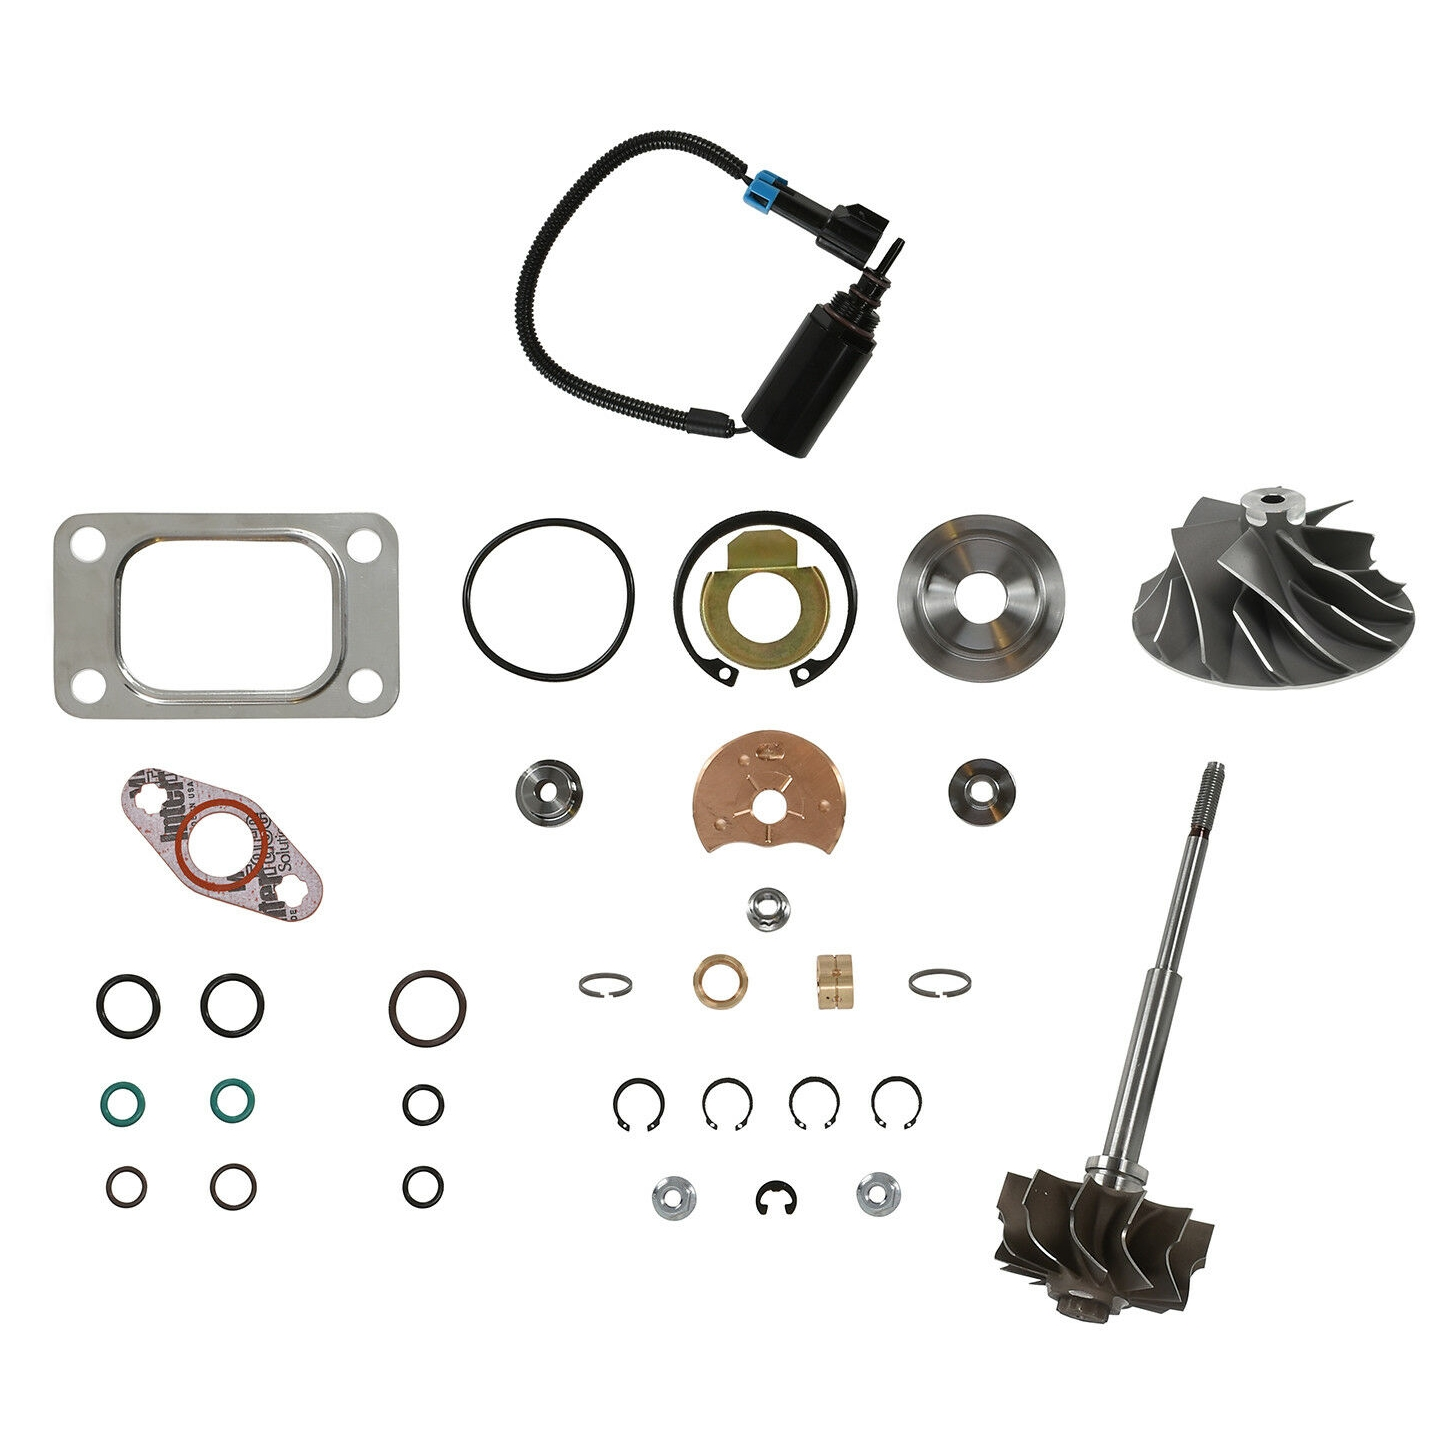 HE351CW Turbo Rebuild Kit Cast Wheel Turbine Shaft Wastegate Solenoid For 04.5-07 5.9L ISB Dodge Ram Cummins Diesel